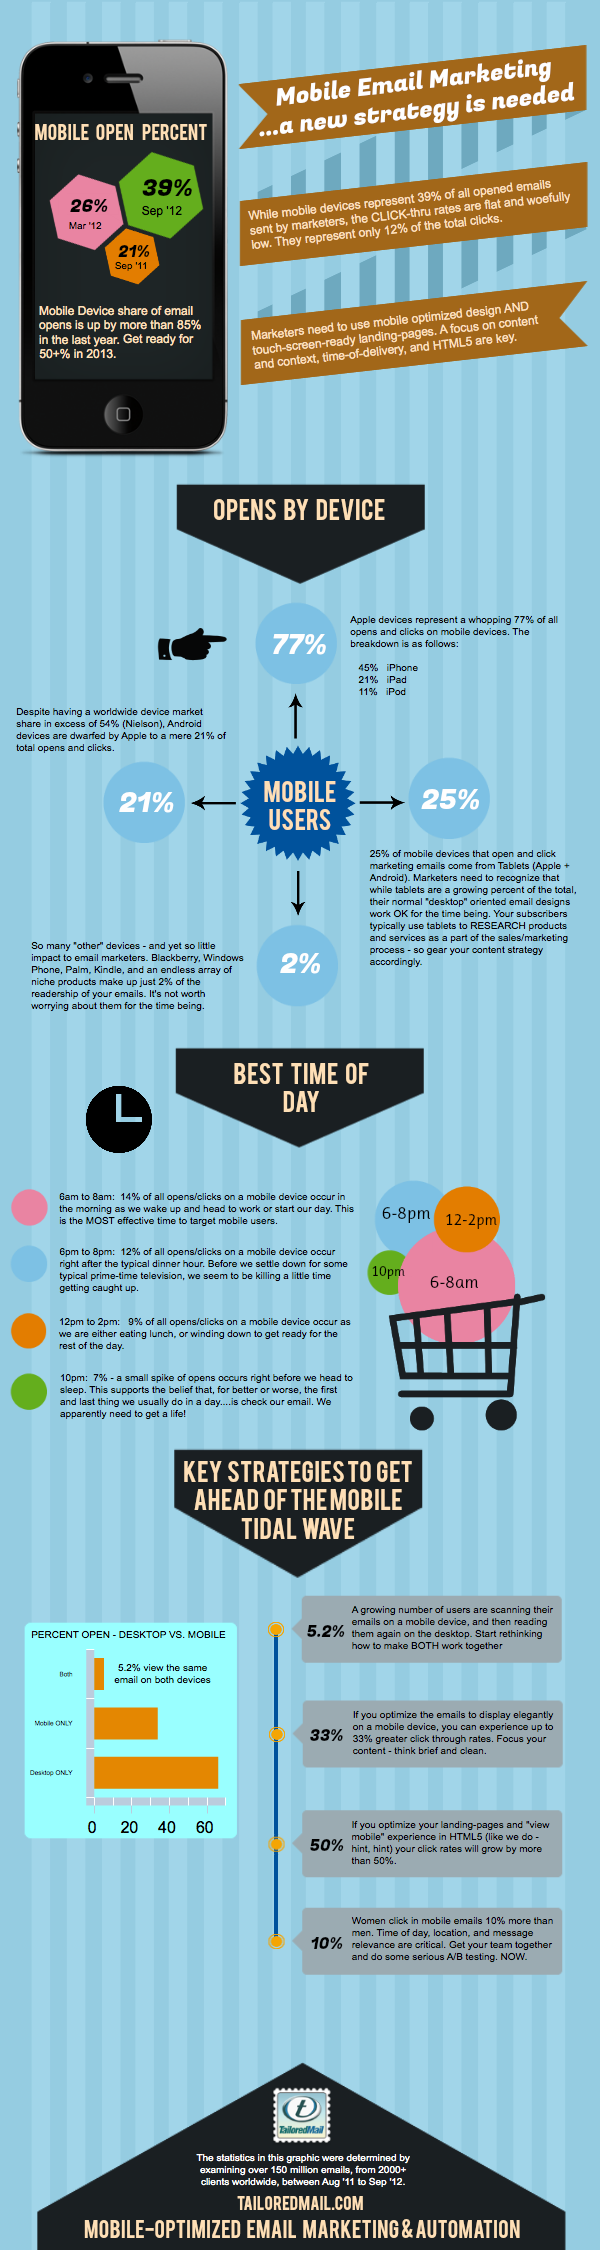 TailoredMail Mobile Email Trends Infographic